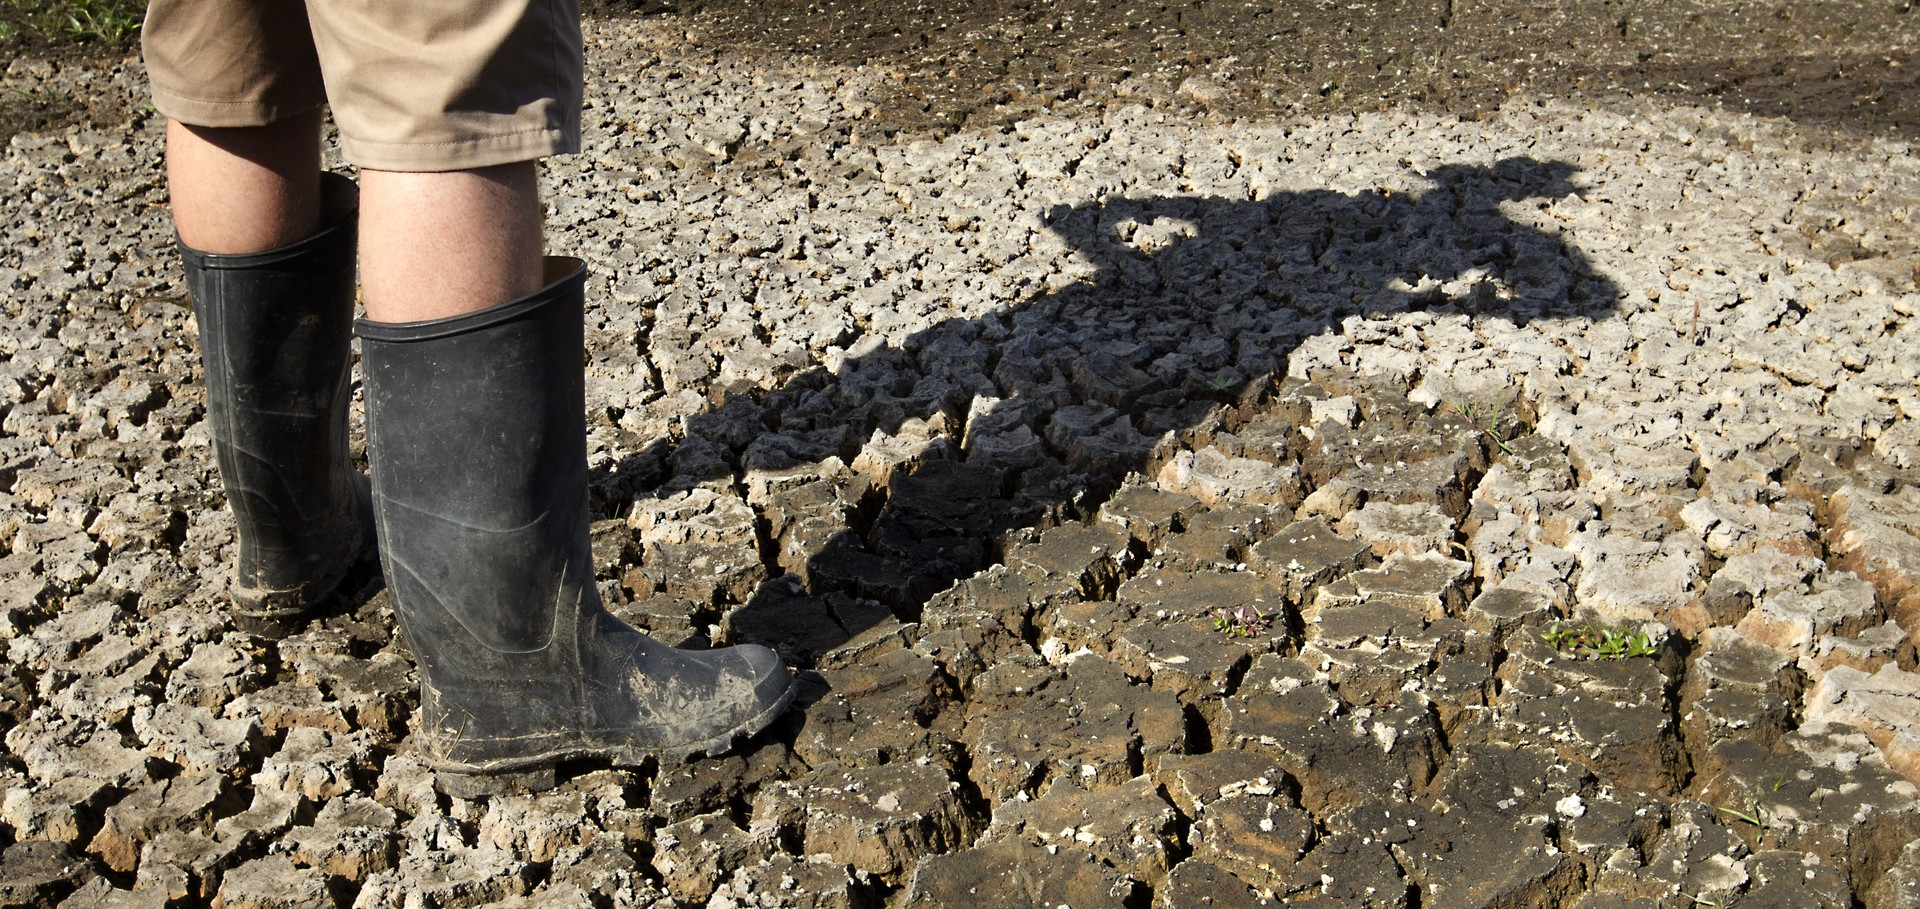 'Widespread extreme dryness' - why drought has come to NZ